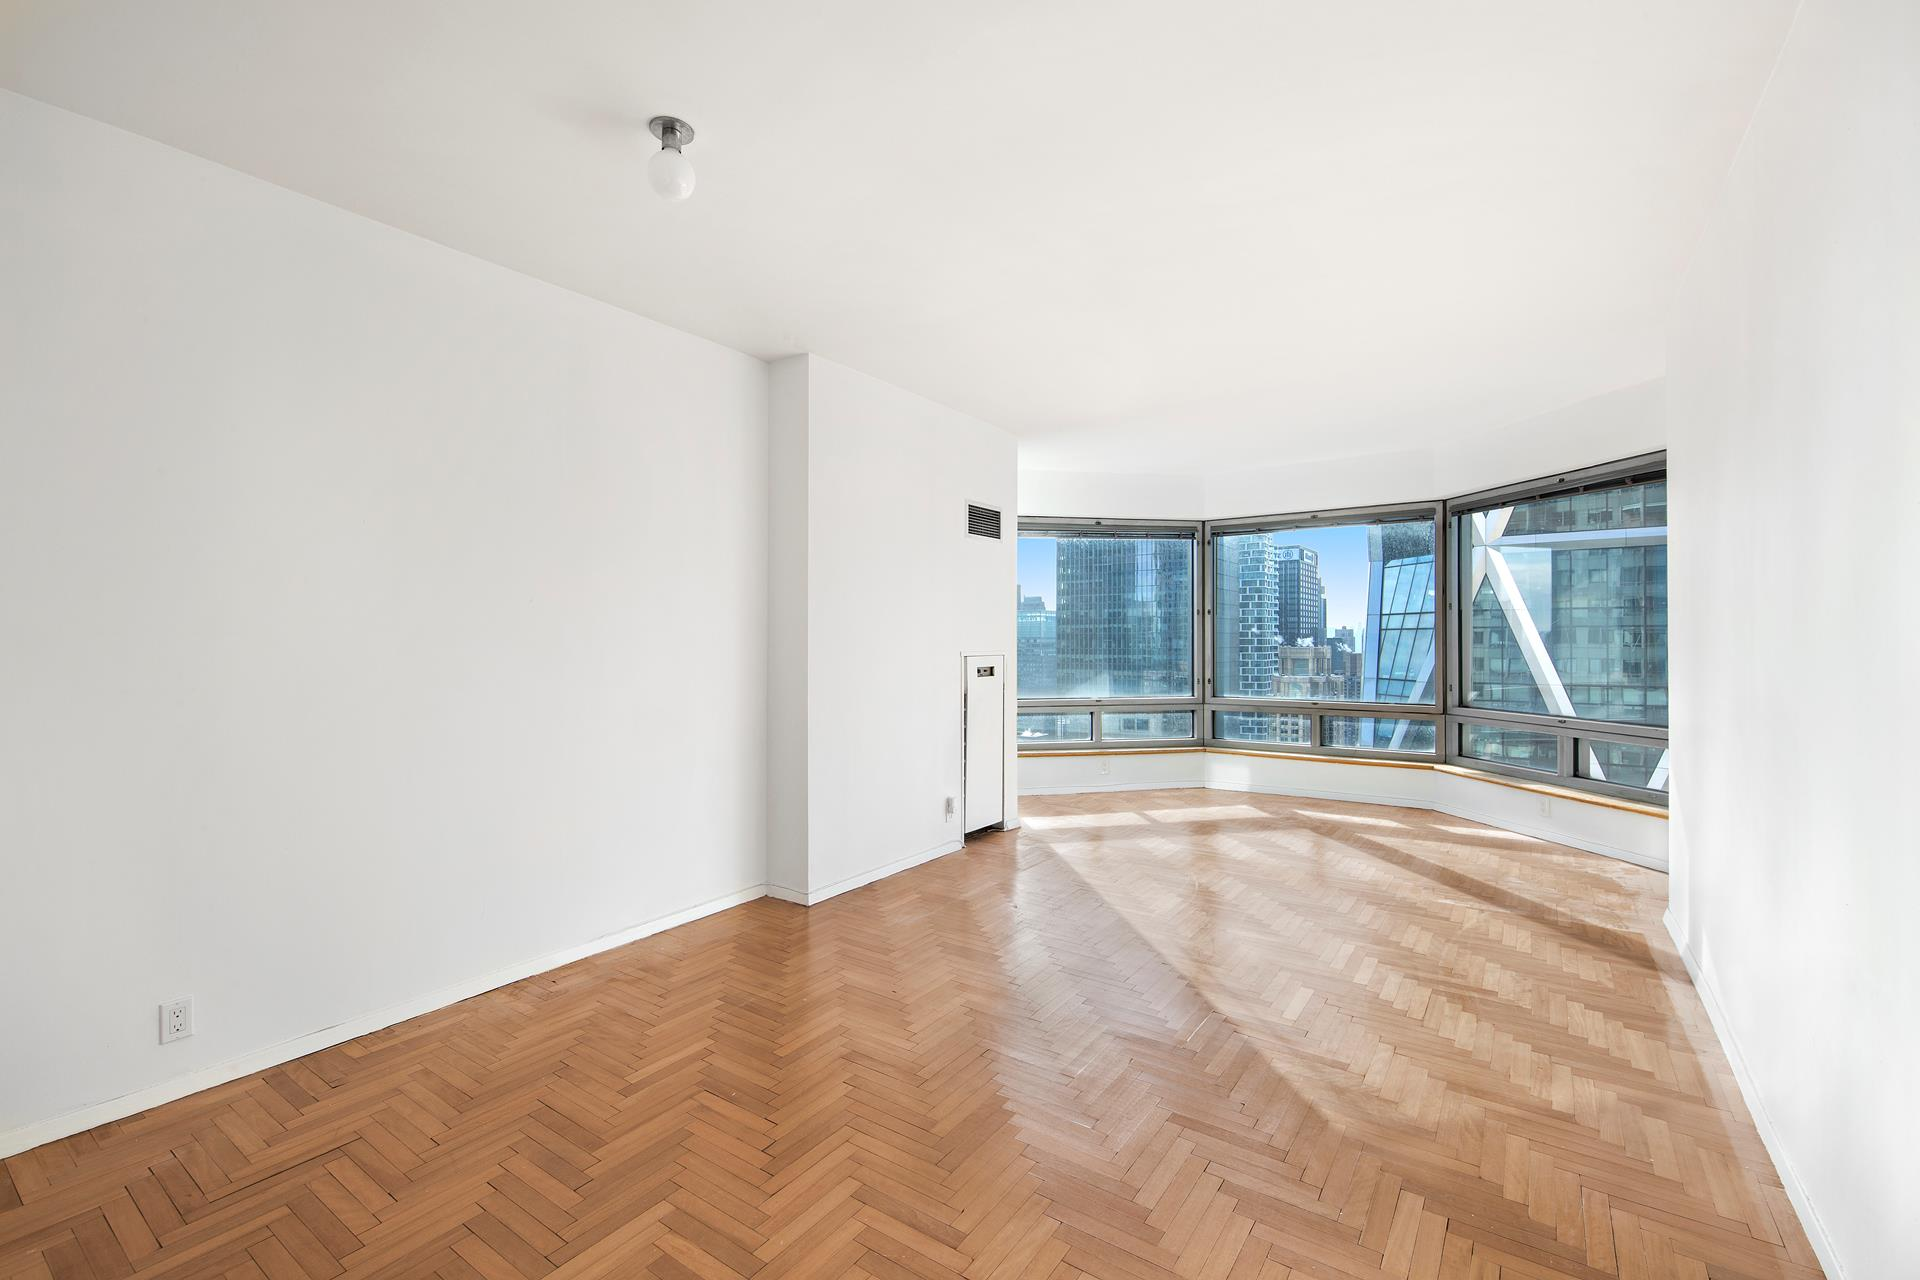 Stunning Billionaire's Row 1 Bedroom, 1.5 Bathroom with spectacular city and river views. The entrance hall leads you into an expansive south facing living room and dining area with oversized bay window overlooking the city and the Hudson River. Separate kitchen features stainless steel appliances and has an opening to the living room. The master bedroom features two closets and in suite marble bathroom. Ample closets, chevron hardwood floors and a half bath complete this home. The apartment also comes with a storage unit!The Central Park Place is one of Manhattan's most desirable condominiums. Services include a 24-hour doorman; health club with indoor swimming pool, sauna, boxing room, massage room, yoga room; terrace; renovated party room/lounge; overnight guest suites; and even a private entrance to subway.